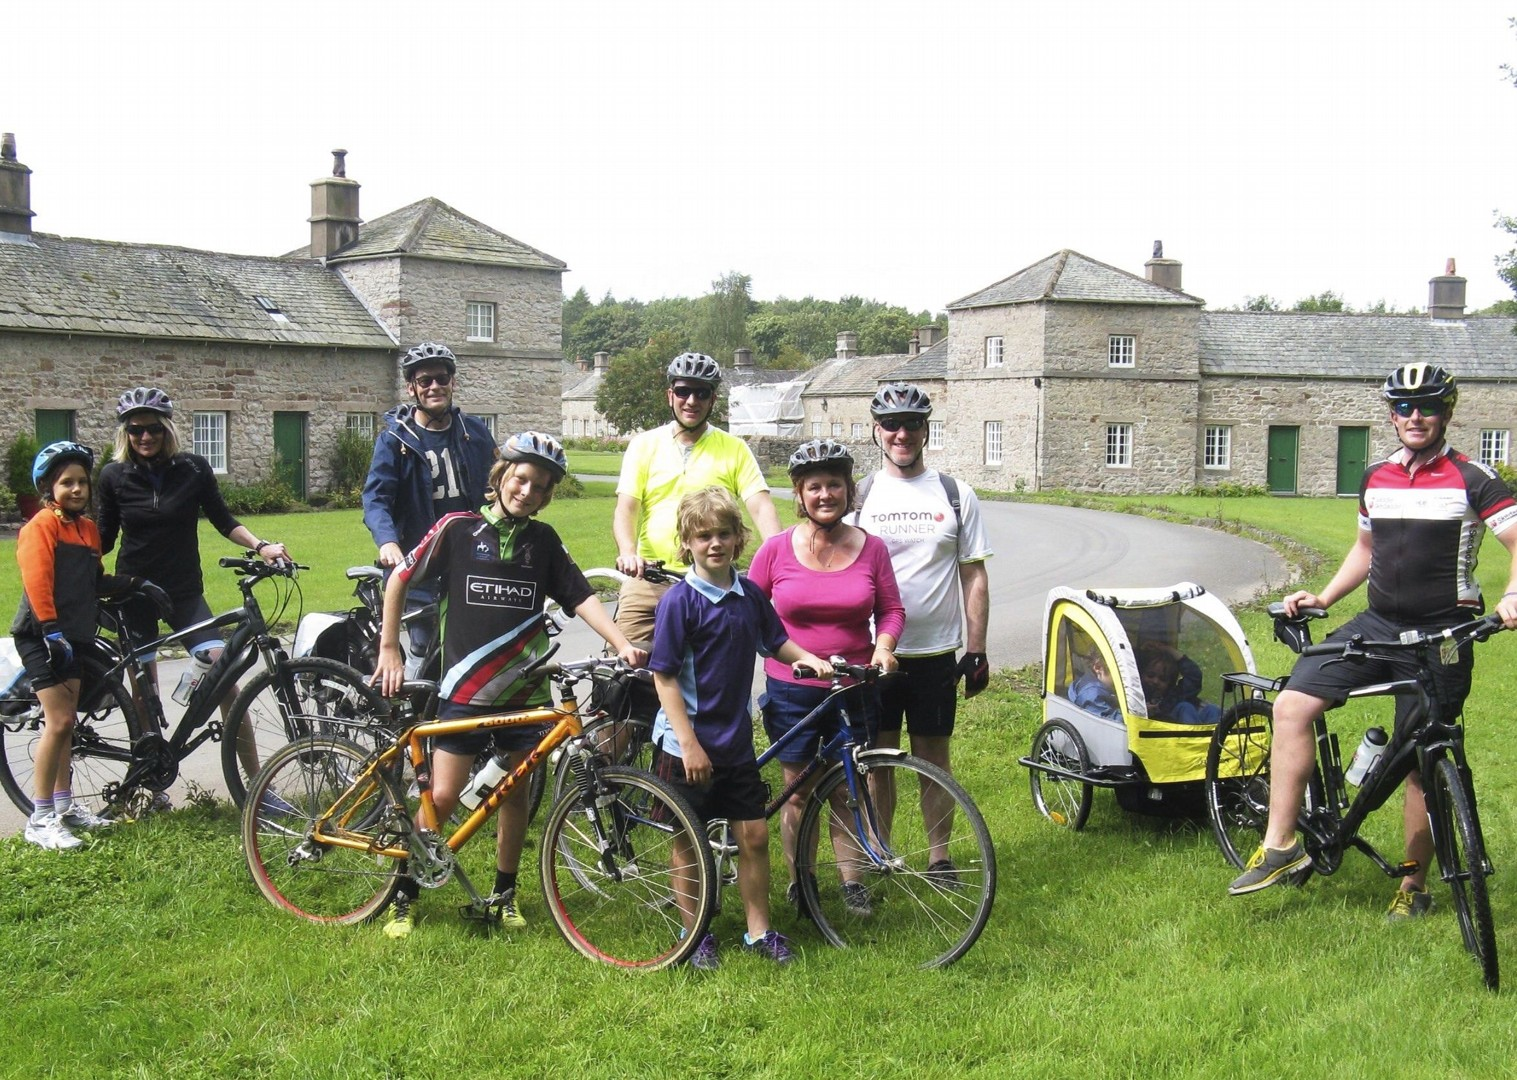 guided-group-family-bike-skills-uk.jpg - UK - Lake District - Guided Family Bike Skills - Family Cycling